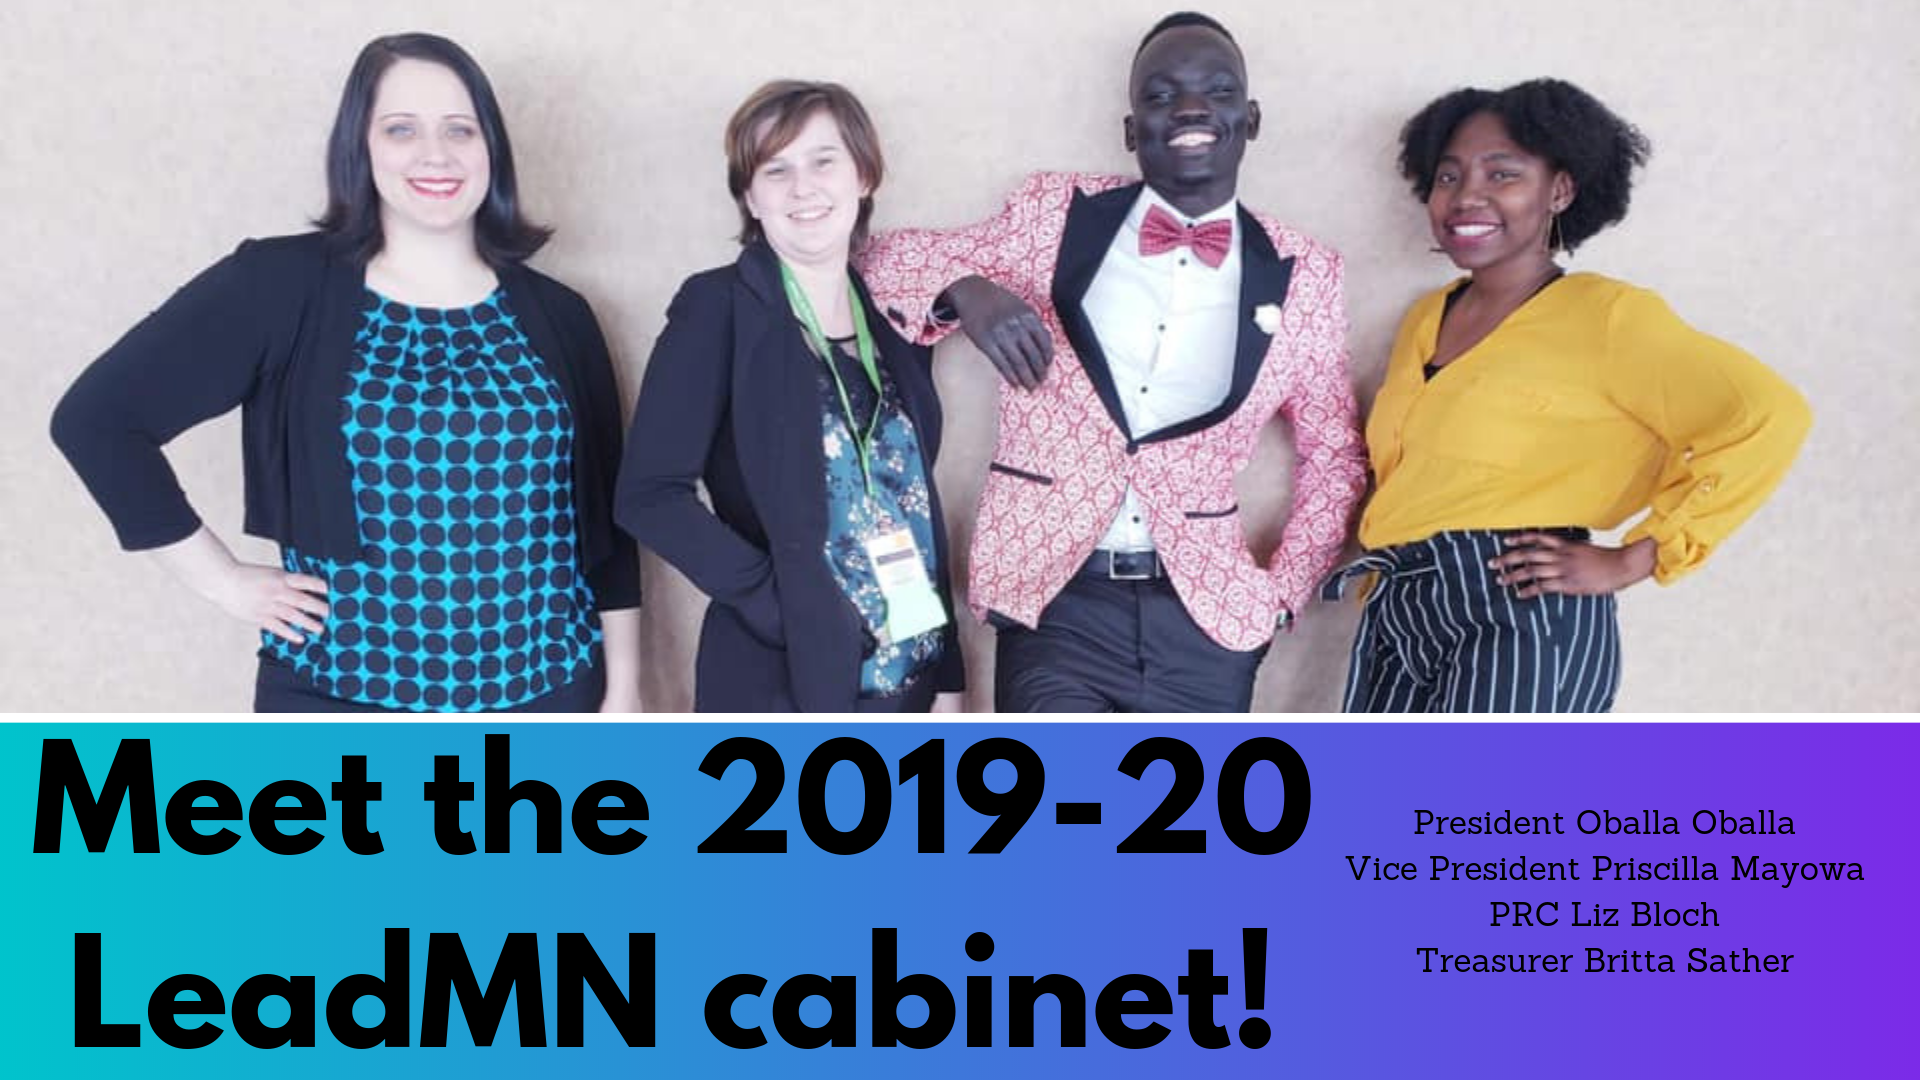 Meet the 2019-20 cabinet!